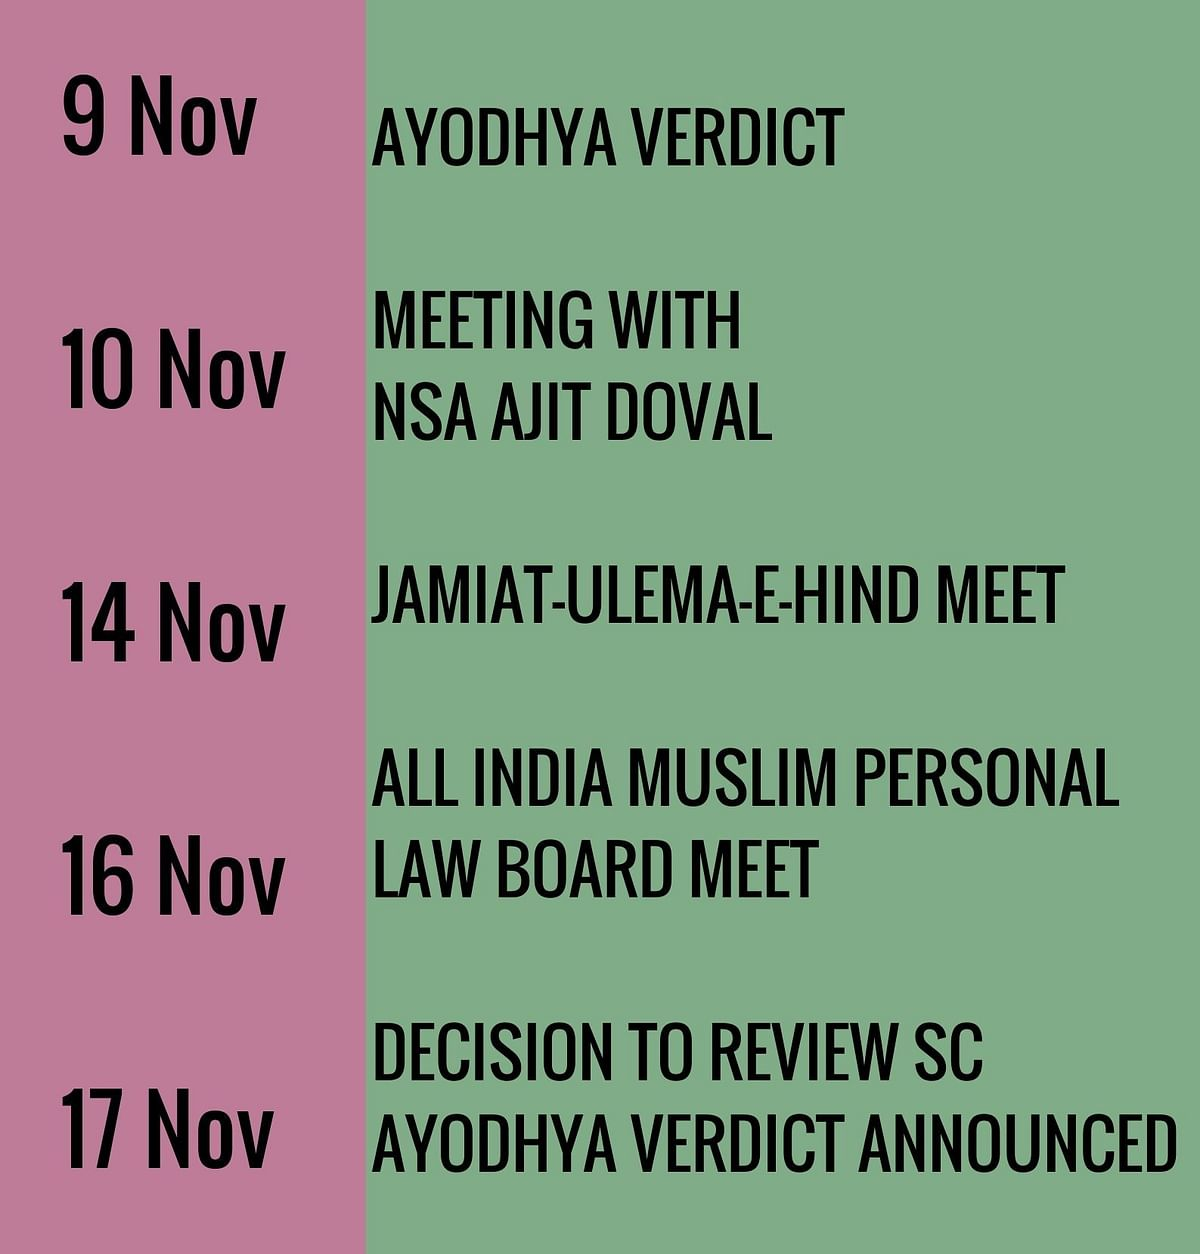 In Protest Lies Closure: The 7-Day Story of Ayodhya Verdict Review